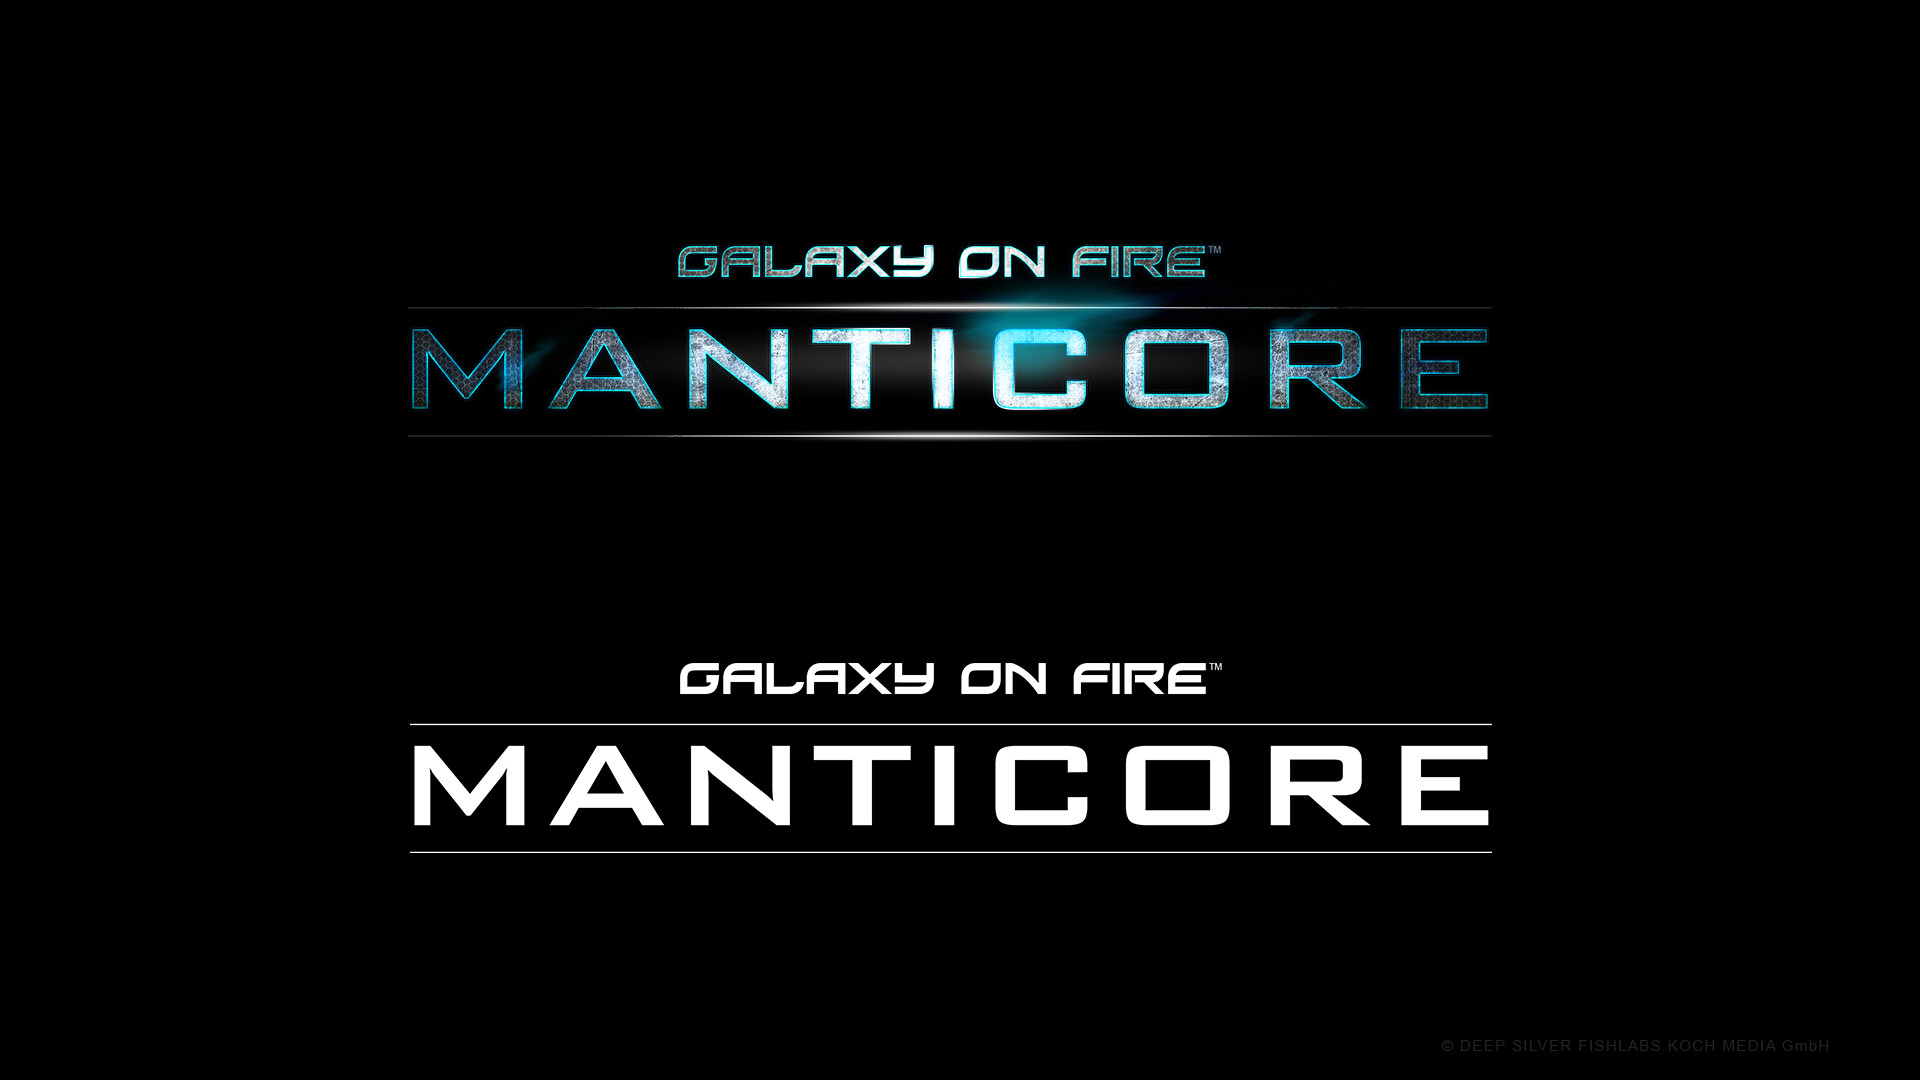 Similar To The GOF Alliances Logo Some Honeycomb Pattern Texture And FX